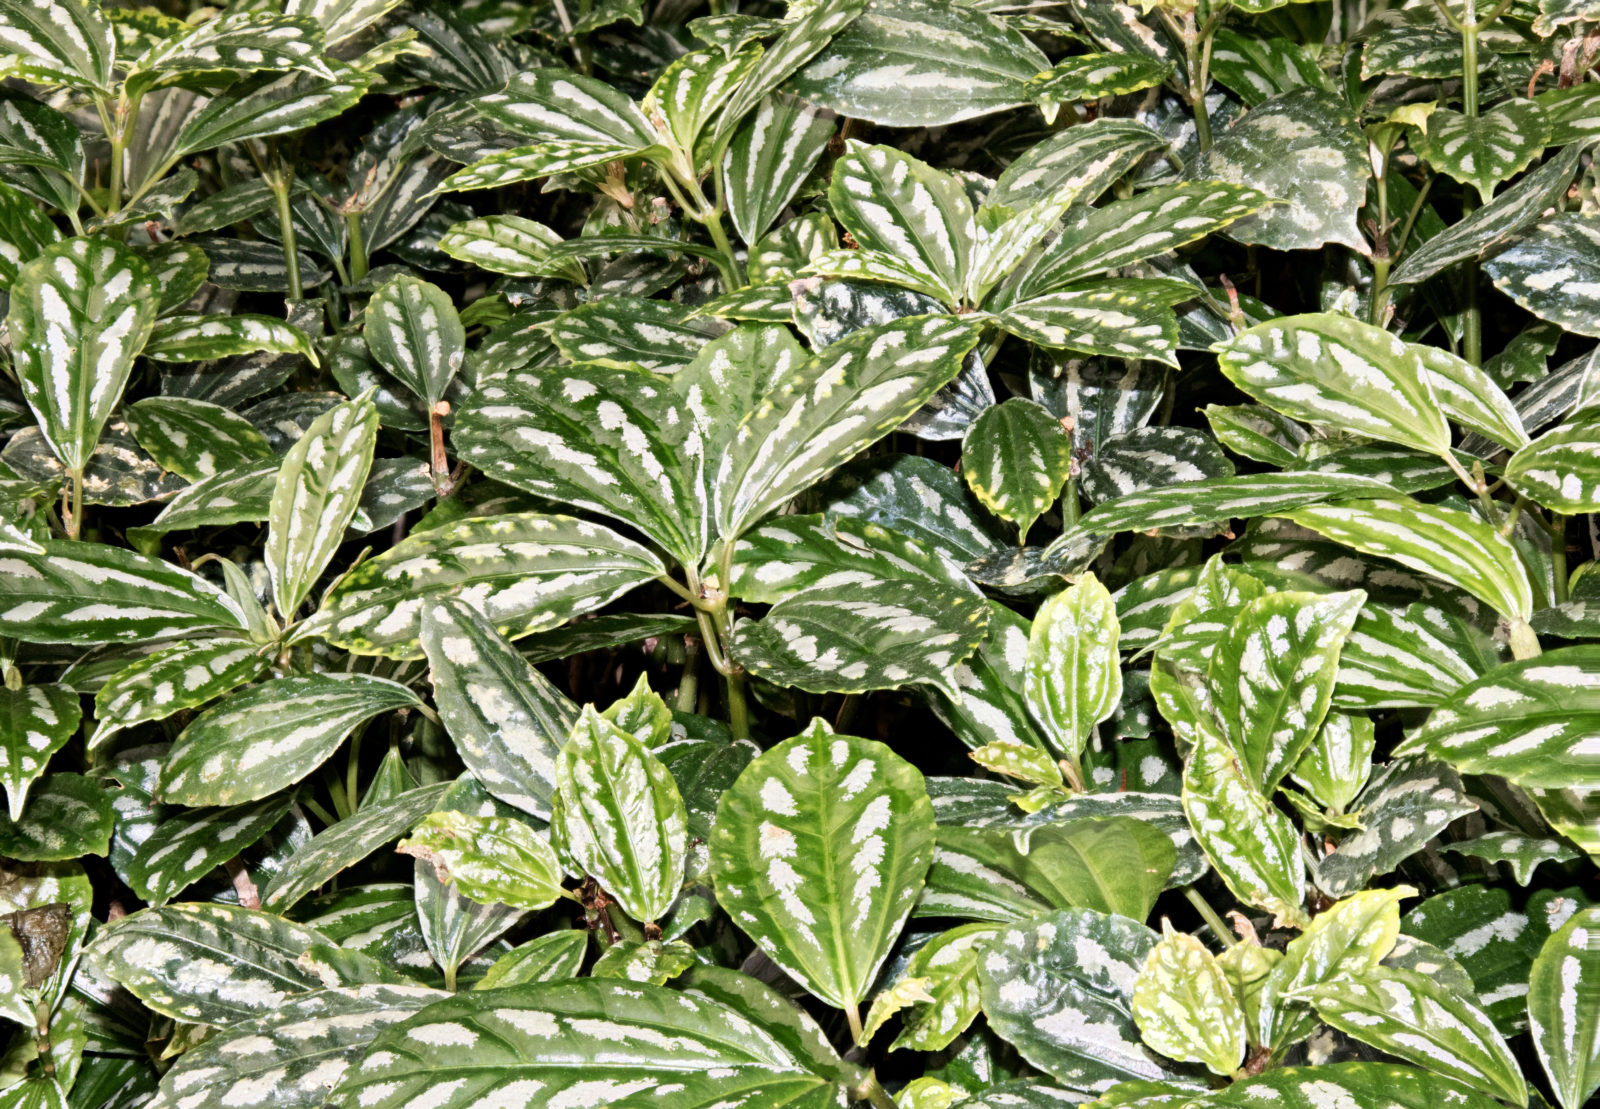 Green and White Patterned Leaves